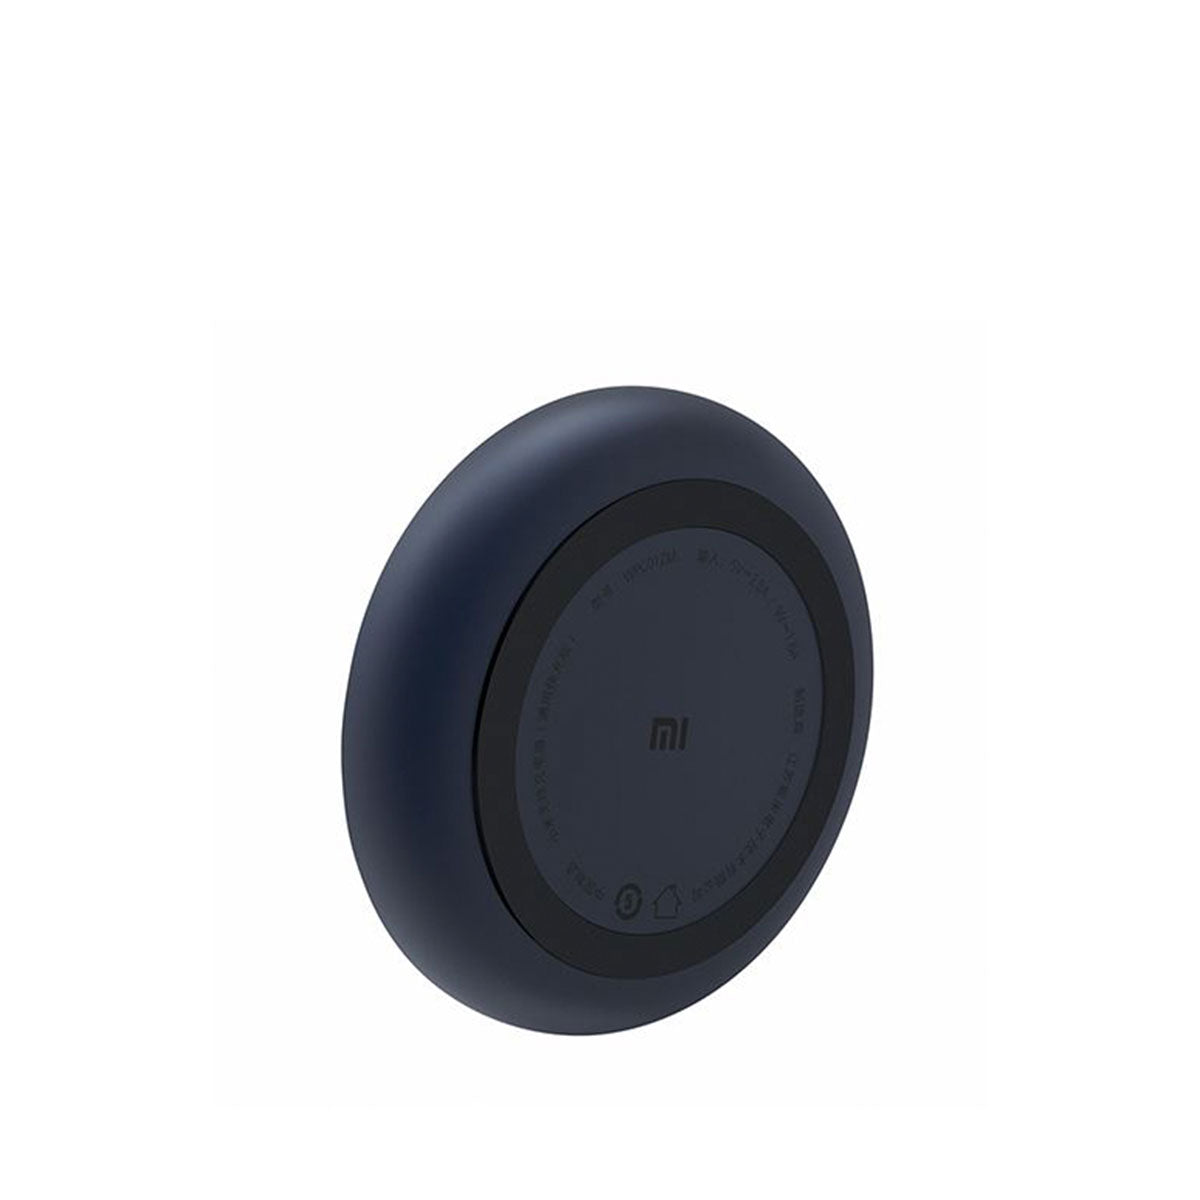 Carregador Xiaomi Mi Charging Pad Wireless Preto